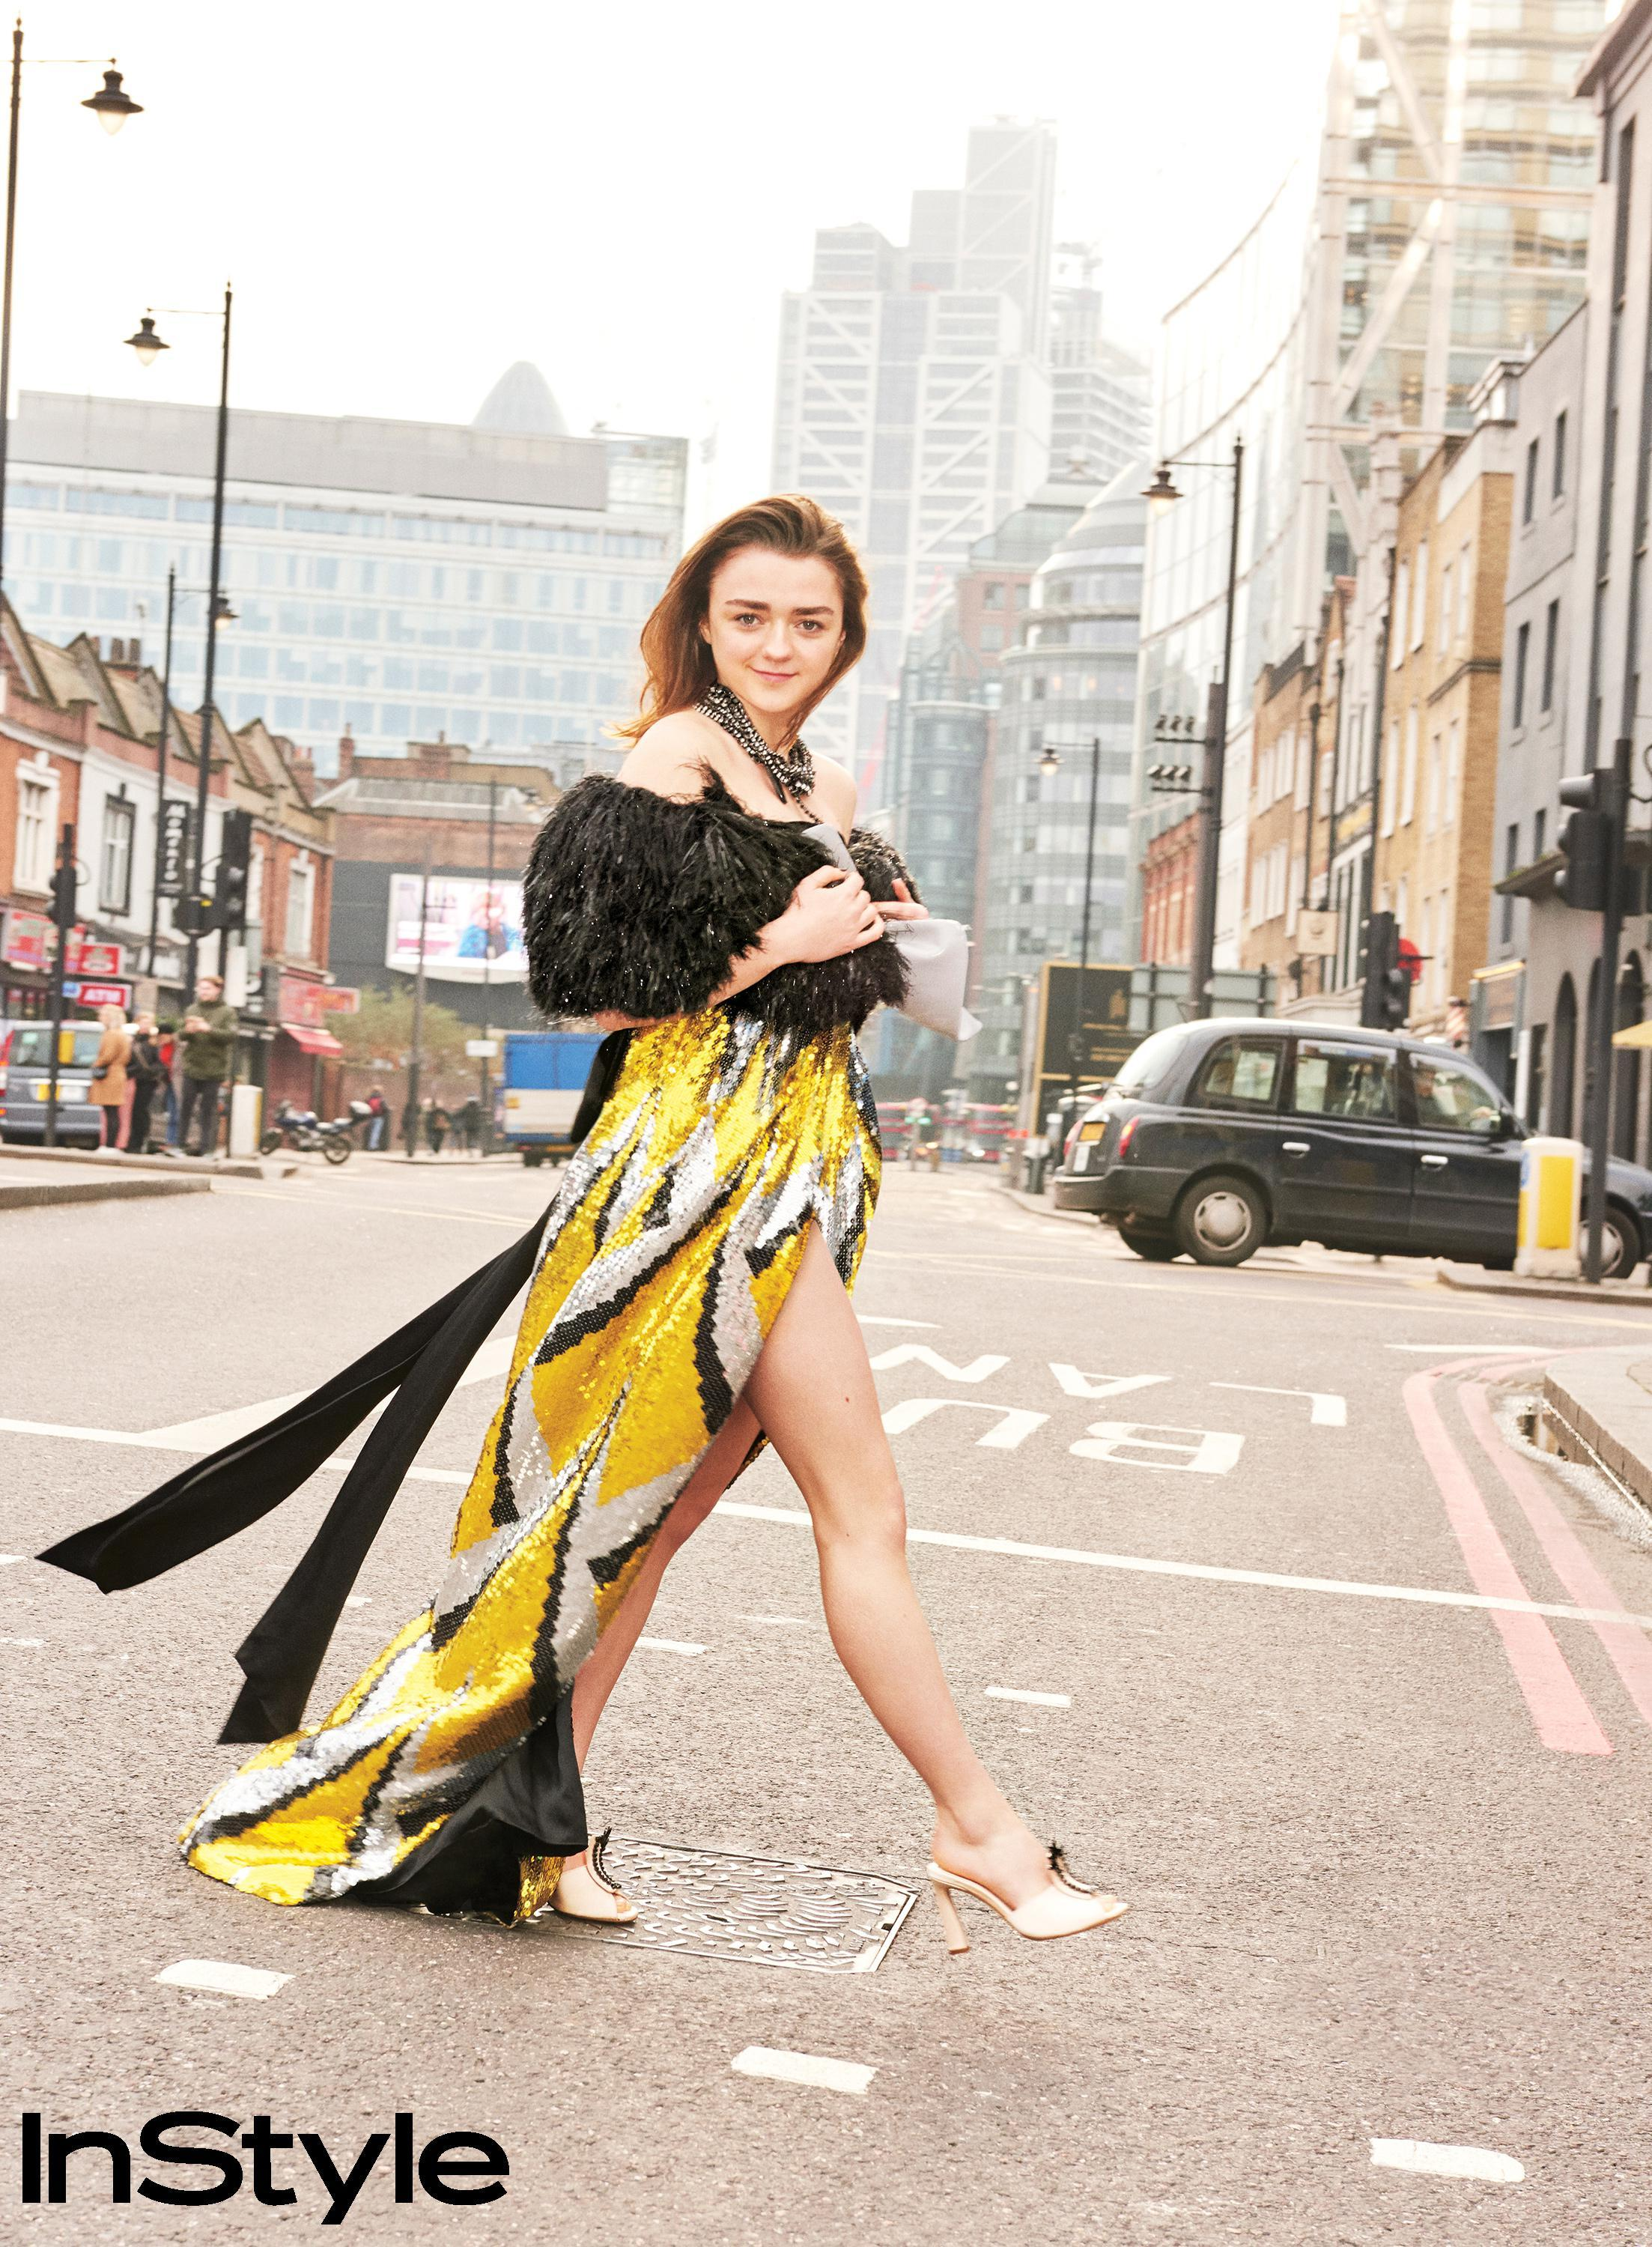 Maisie Williams Feet Hot